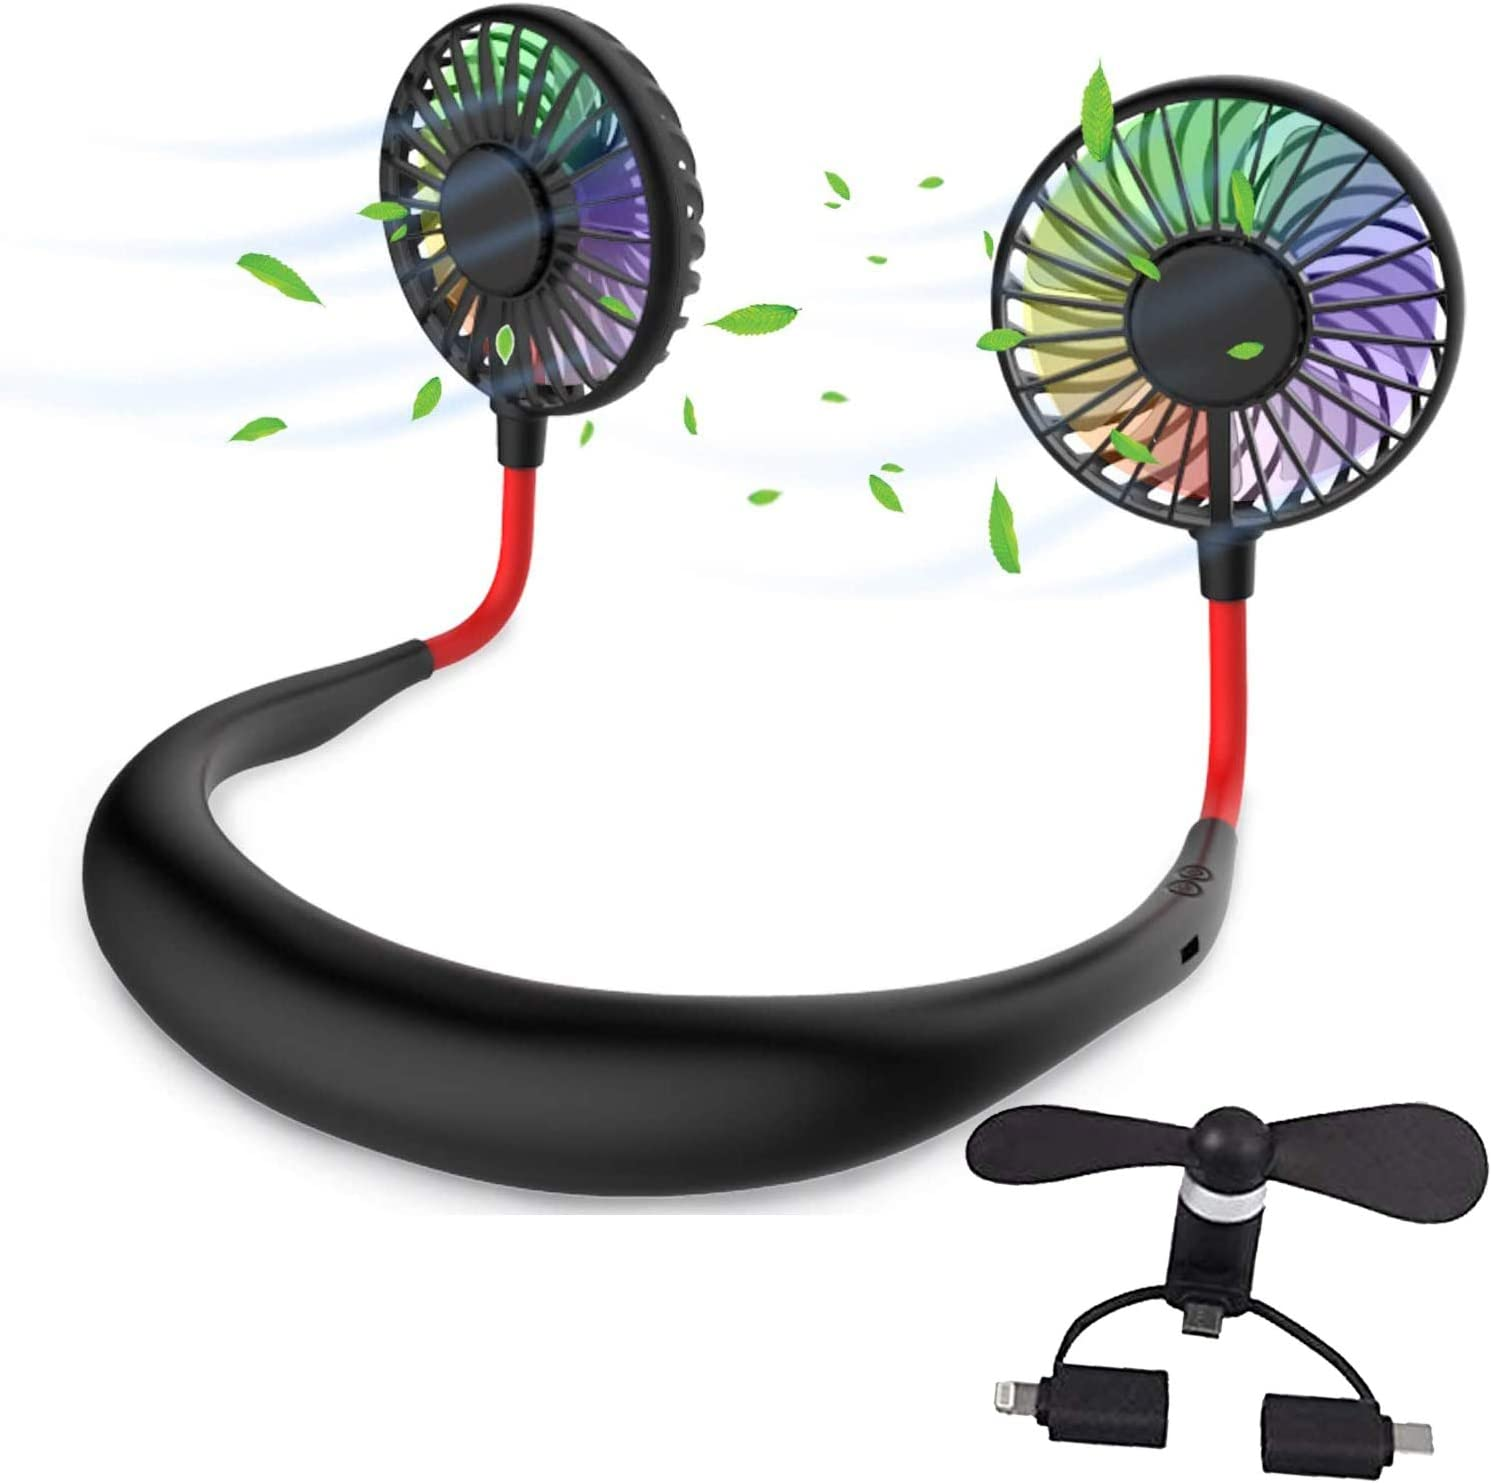 Hands Free Portable Neck Fan with Mini Phone Fan 2000mAh Rechargeable Personal Fan Battery Operated Fan 3 Speeds 360 Degree Adjustable for Office Home Travel Indoor Outdoor